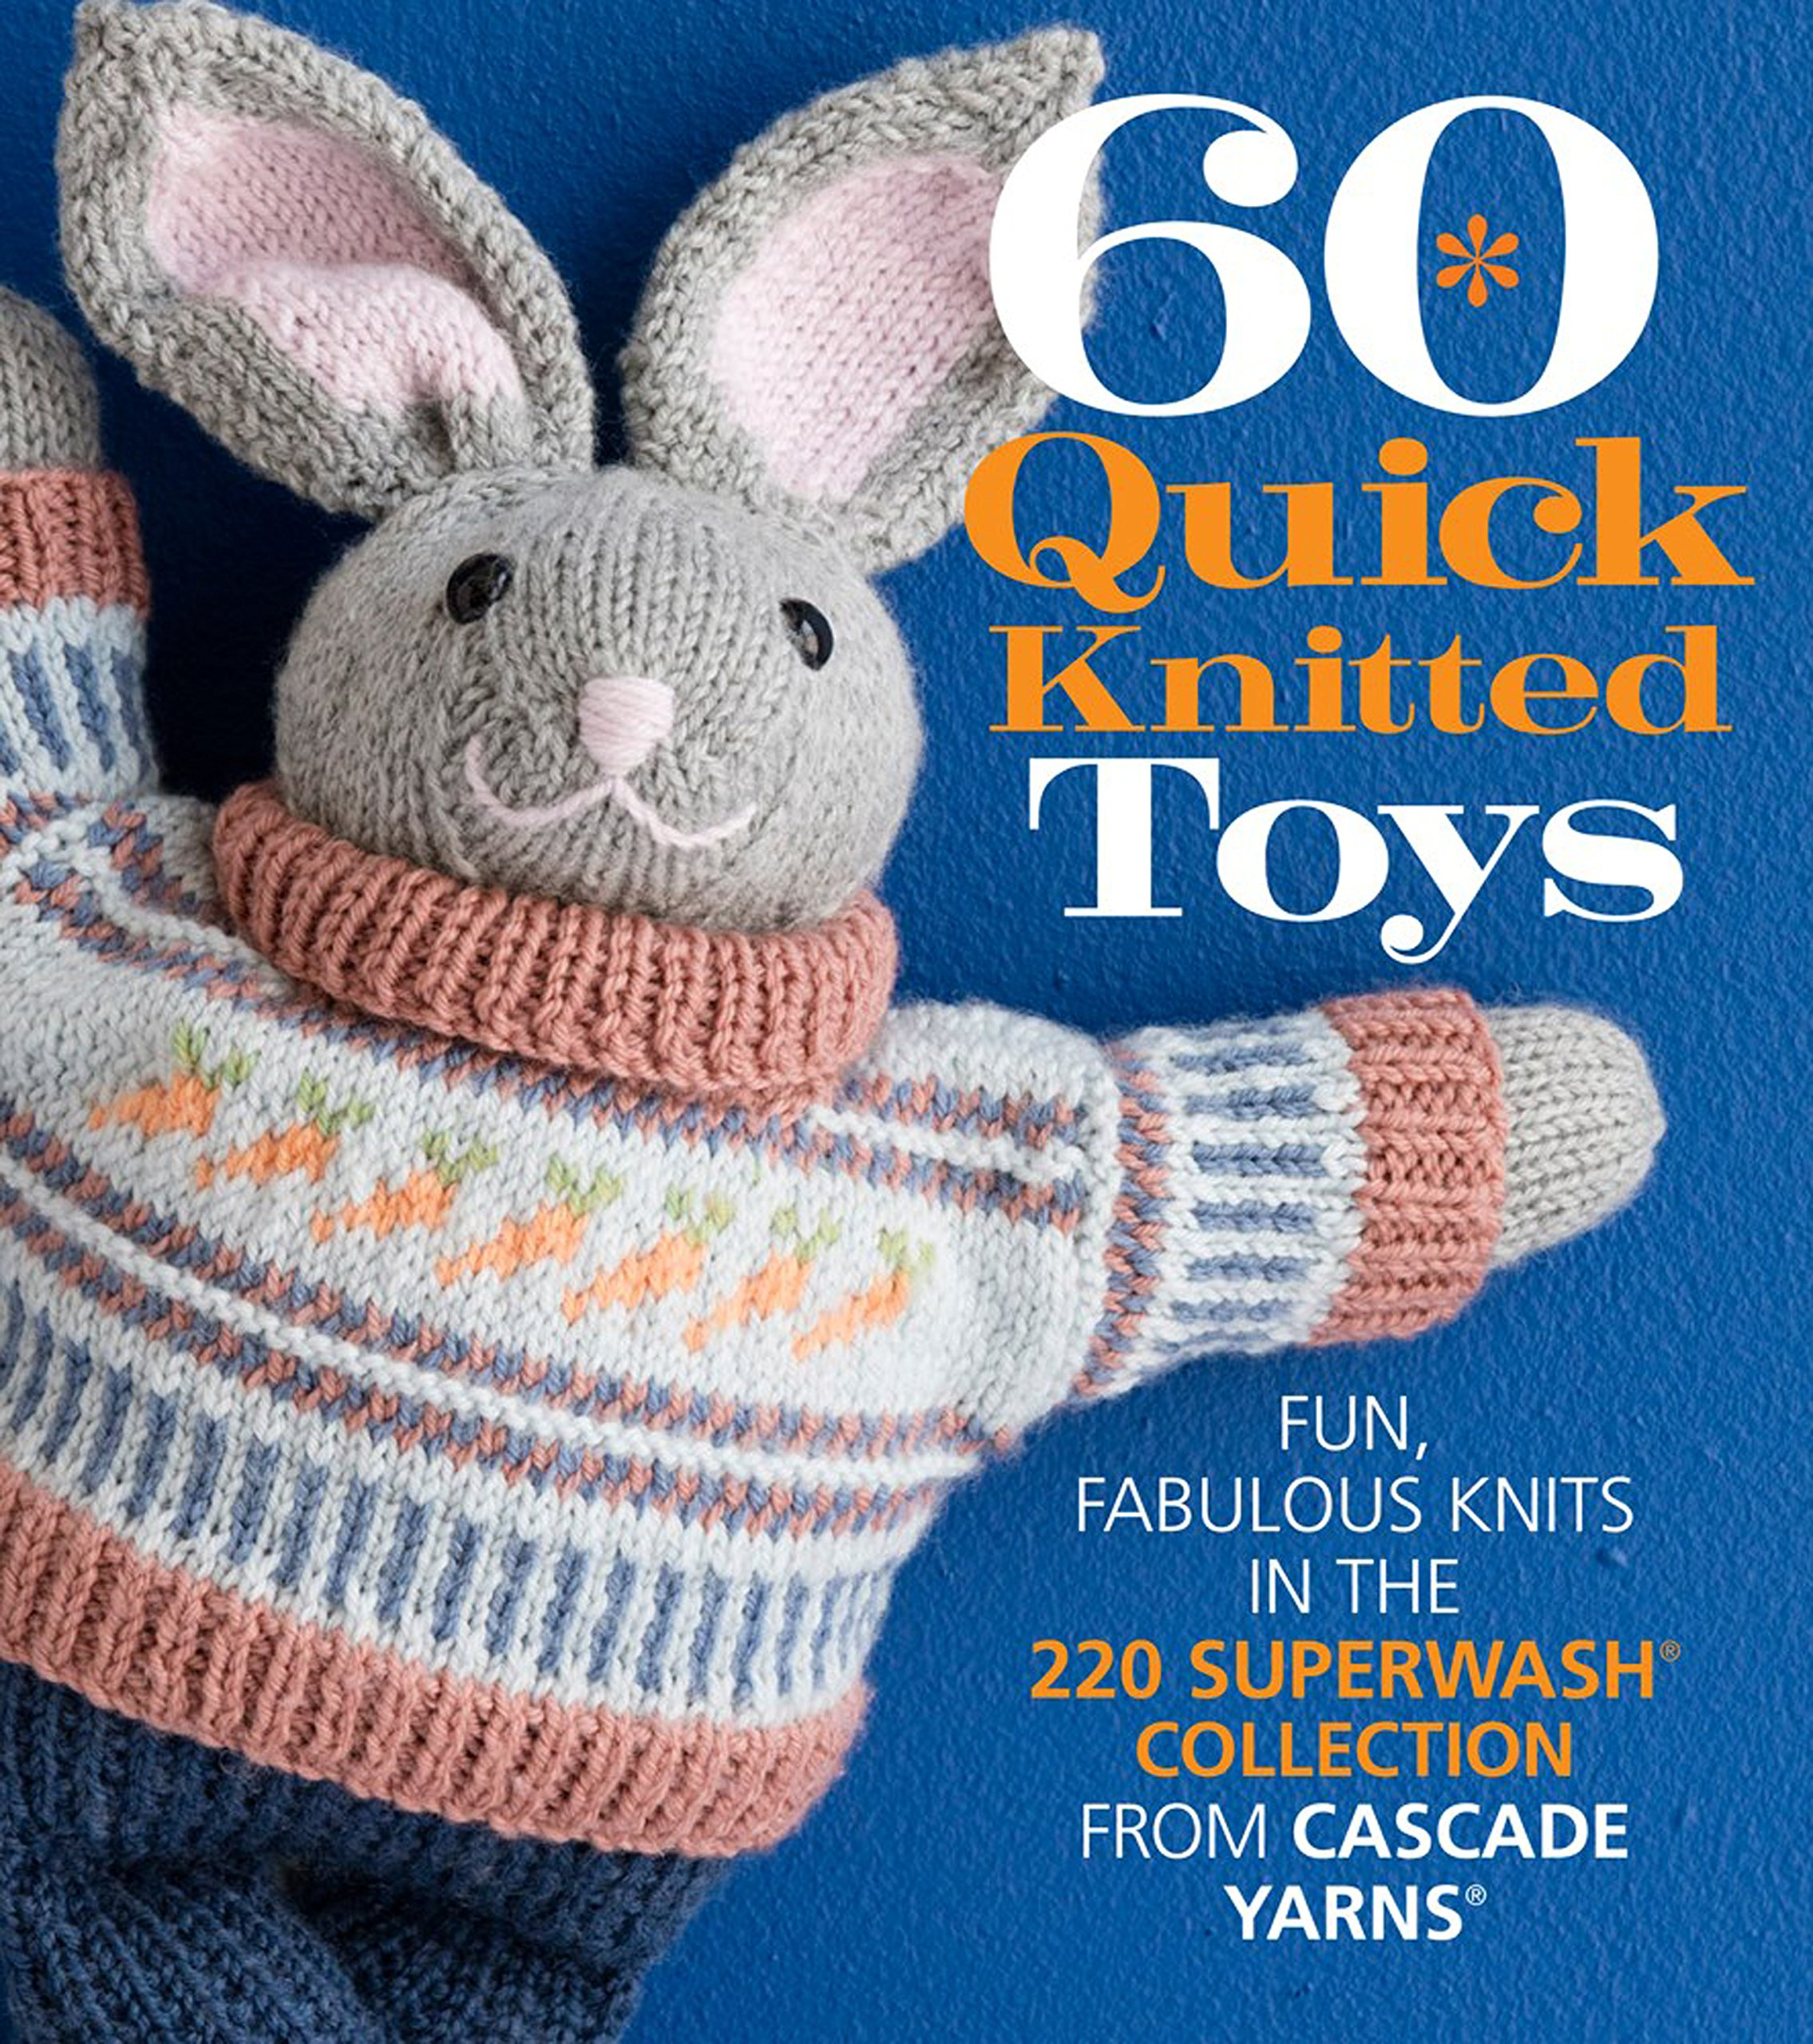 60 Quick Knitted Toys: Fun, Fabulous Knits in the 220 Superwash Collection from Cascade Yarns (60 Quick Knits Collection)